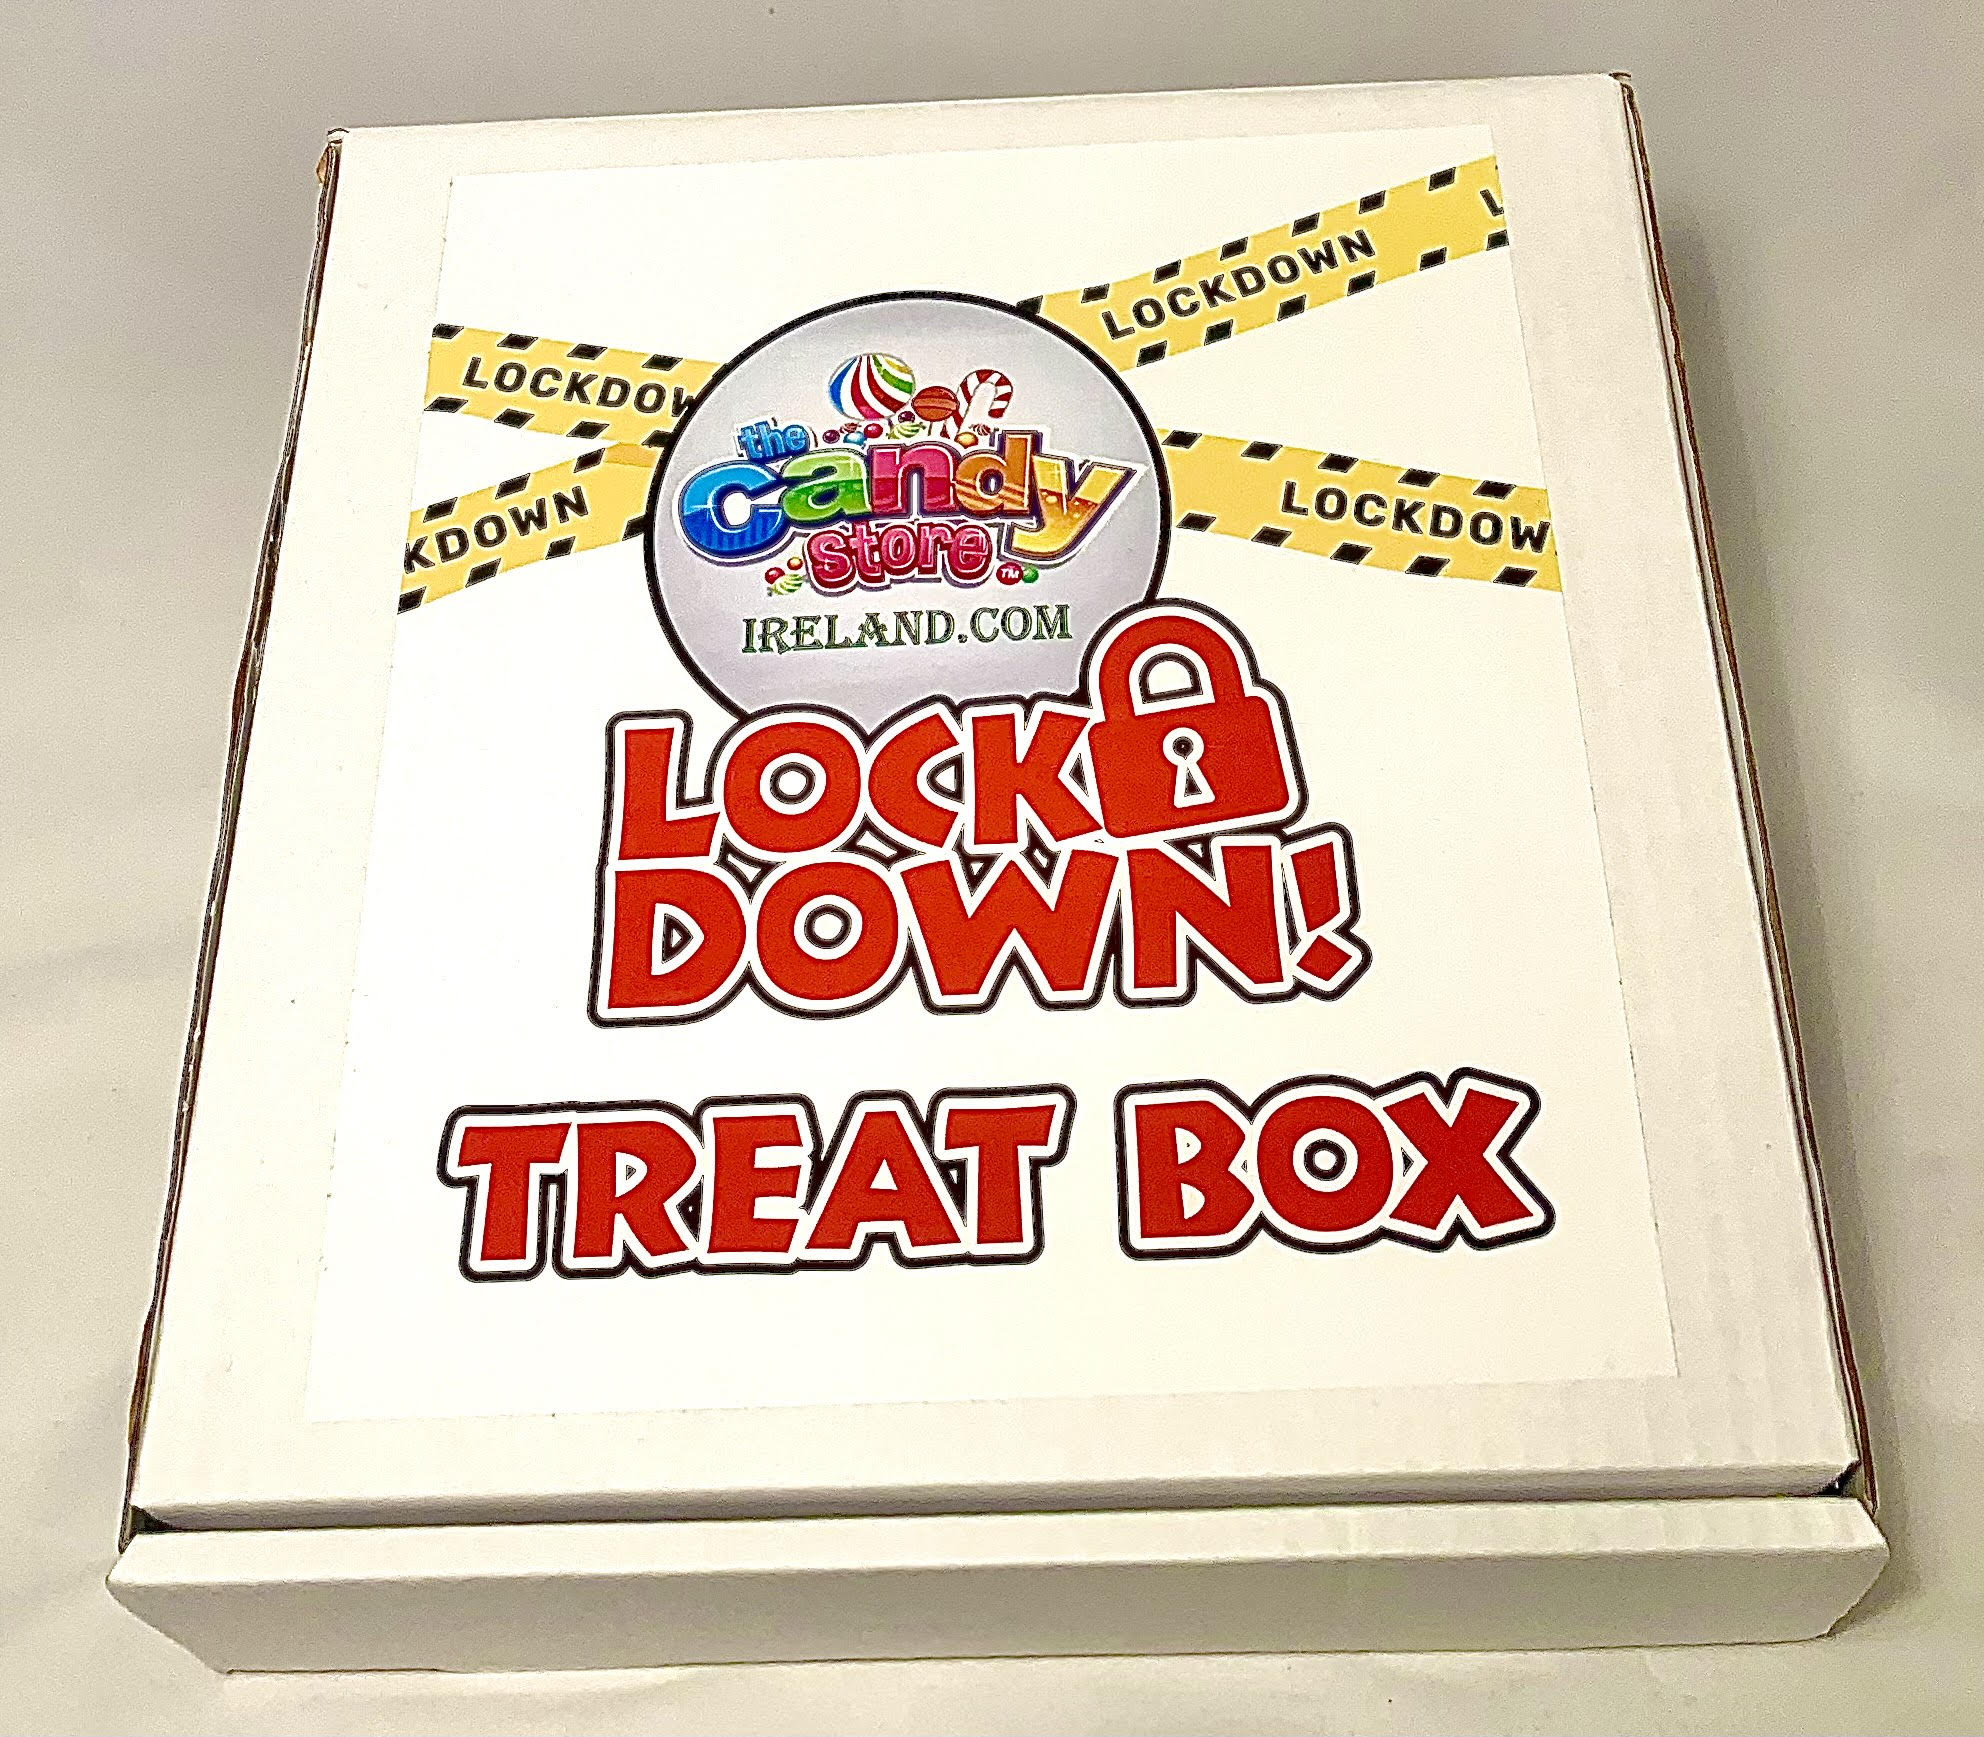 Lockdown Treat Box